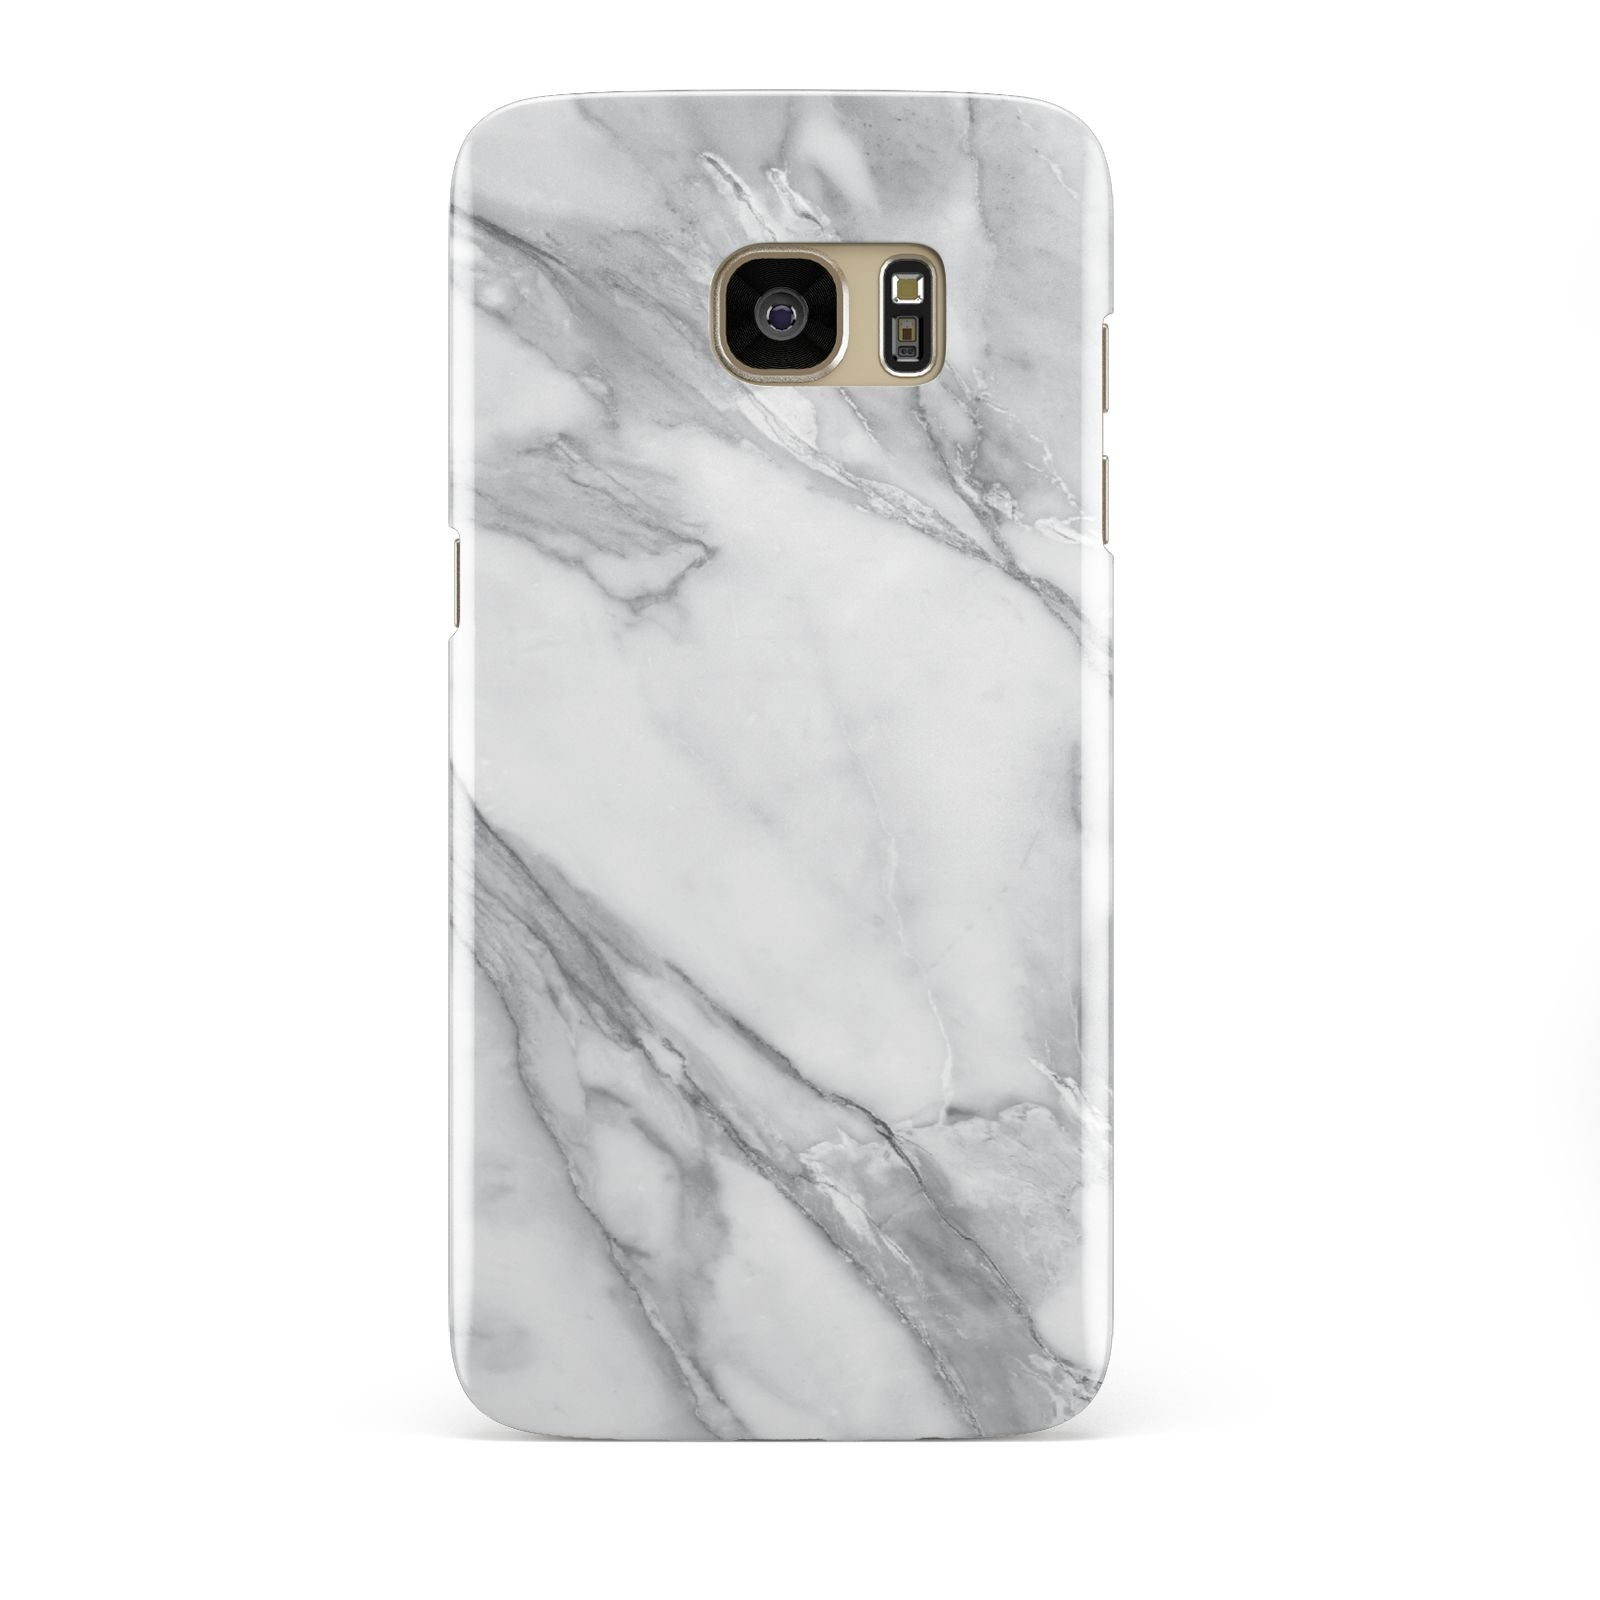 Faux Marble Effect White Grey Samsung Galaxy S7 Edge Case